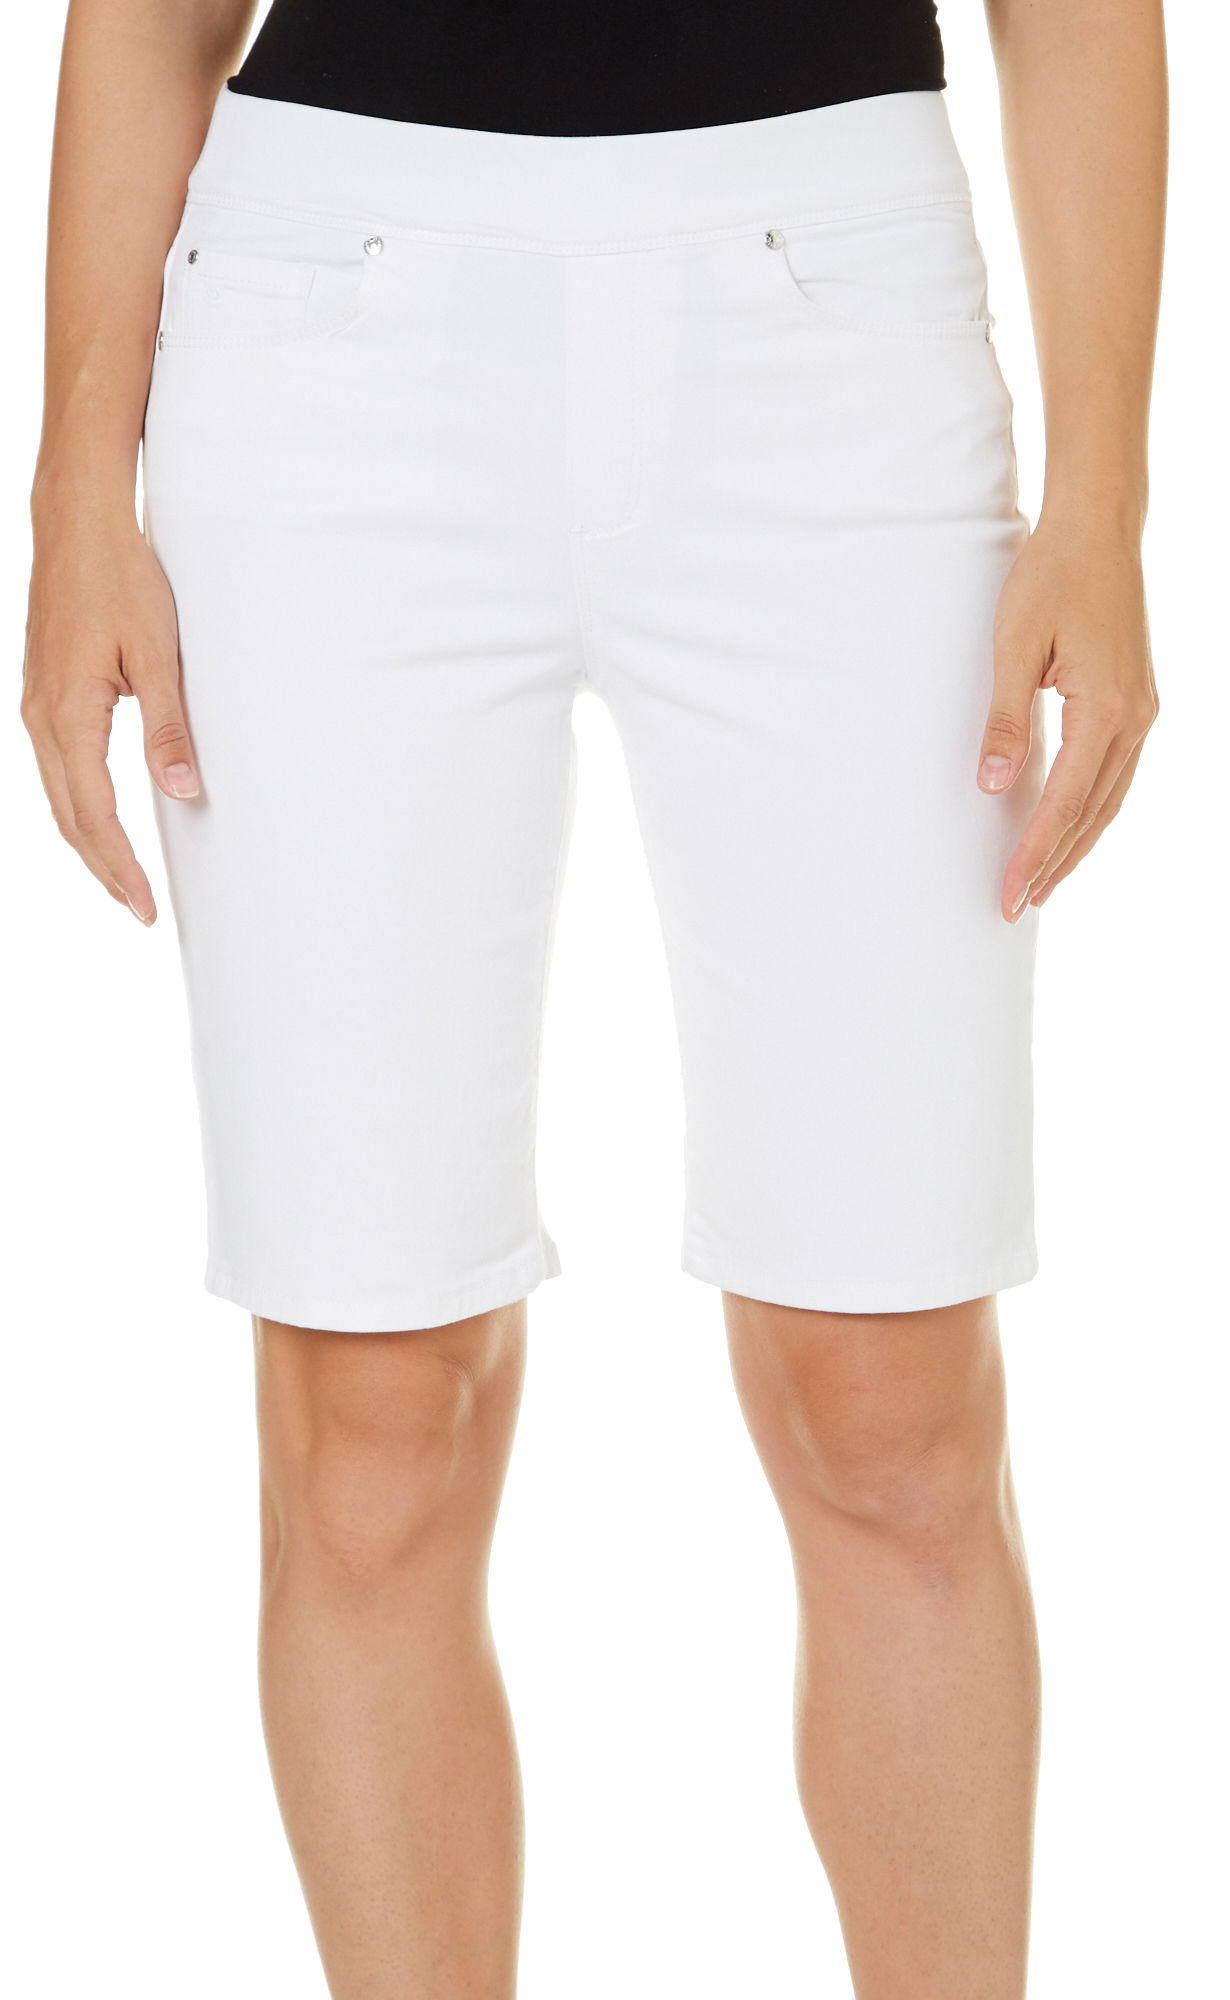 48b46b05b6409 Gloria Vanderbilt Womens Avery Shorts 16 Shell White. About this product.  Picture 1 of 2  Picture 2 of 2